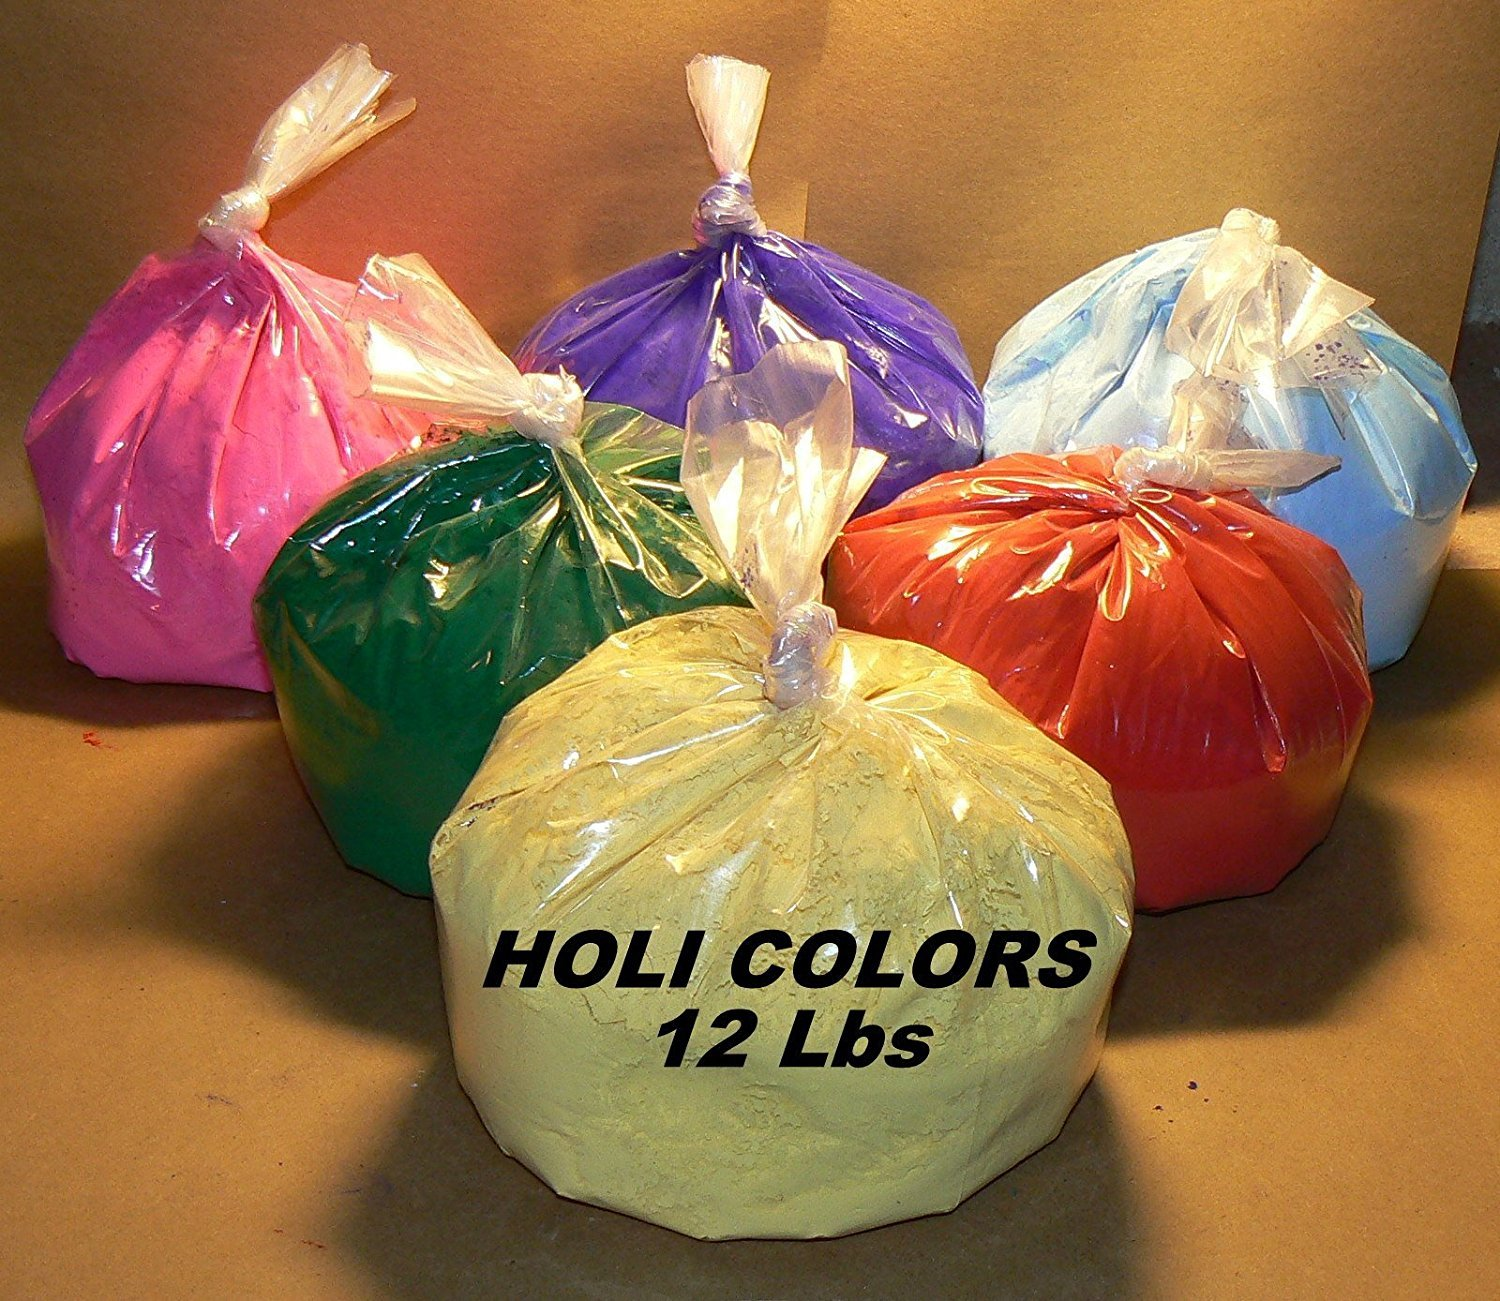 PINK BLUE 2lbs ea color AND PURPLE HOLI Colors 12 Lbs 6 colors RED GREEN SHIPS FROM LOS ANGELES 3 TO 6 DAYS DELIVERY All India Store YELLOW